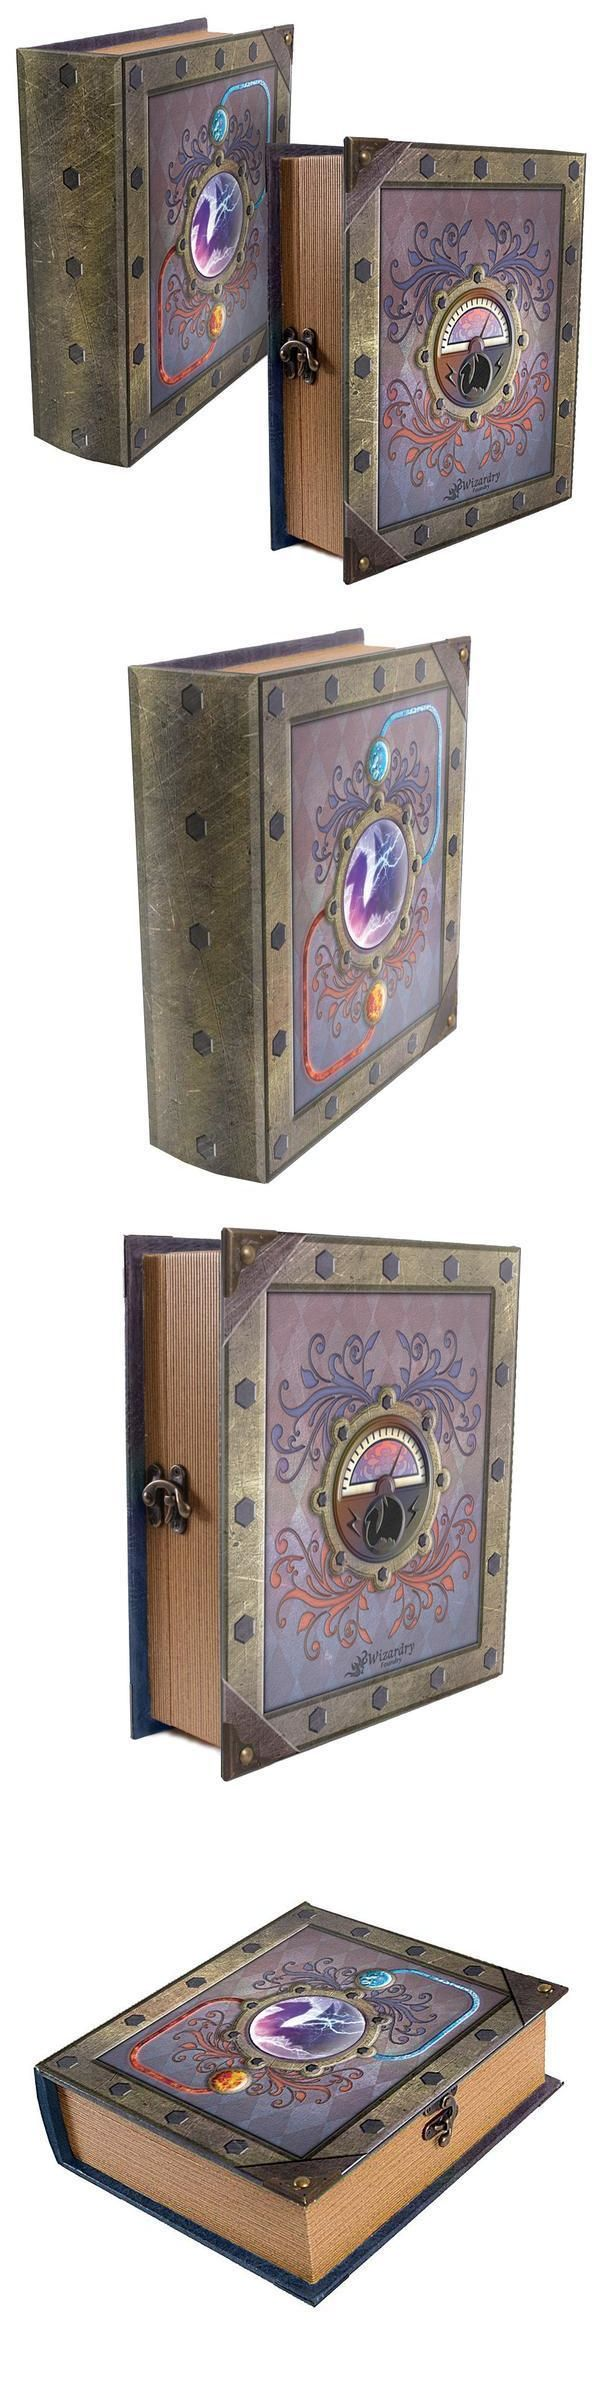 CCG Deck Boxes 183462: Reaction Deck Box Spellbook Wooden Fabric Lined For Magic Tcg Mtg Yugioh -> BUY IT NOW ONLY: $77.94 on eBay!